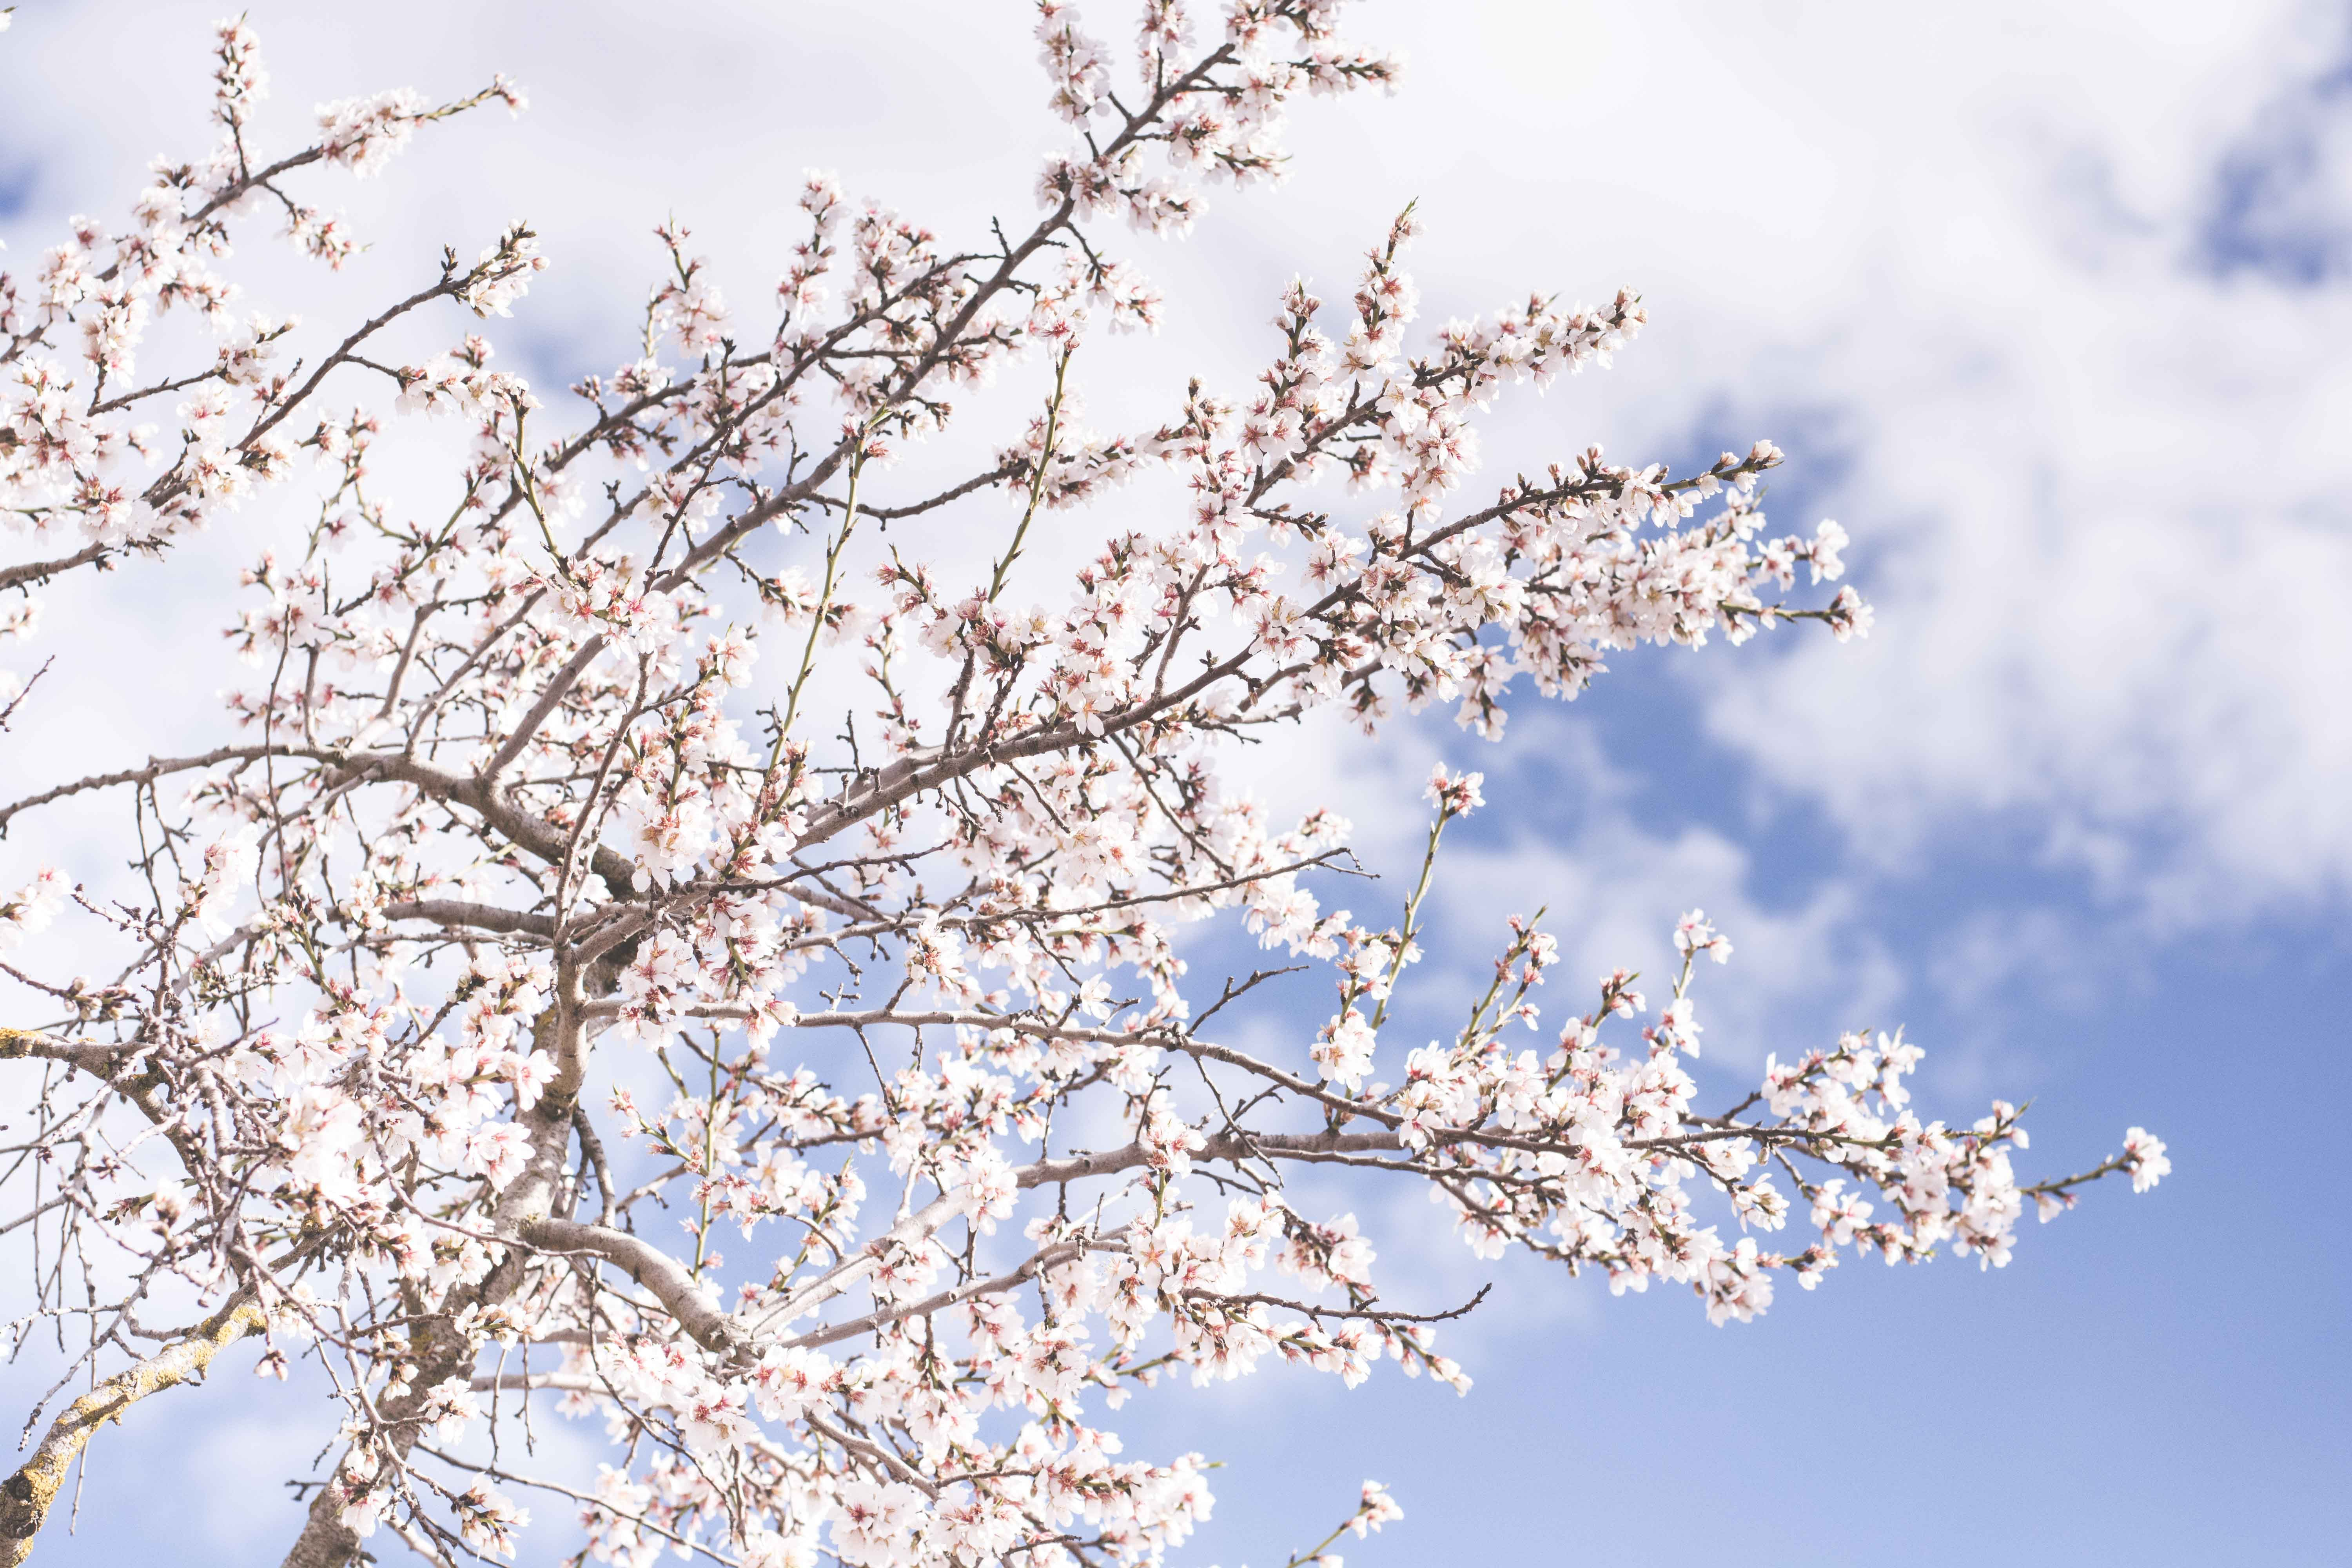 Cherry blossom tree from afar with cloudy blue sky in Spring, Òdena